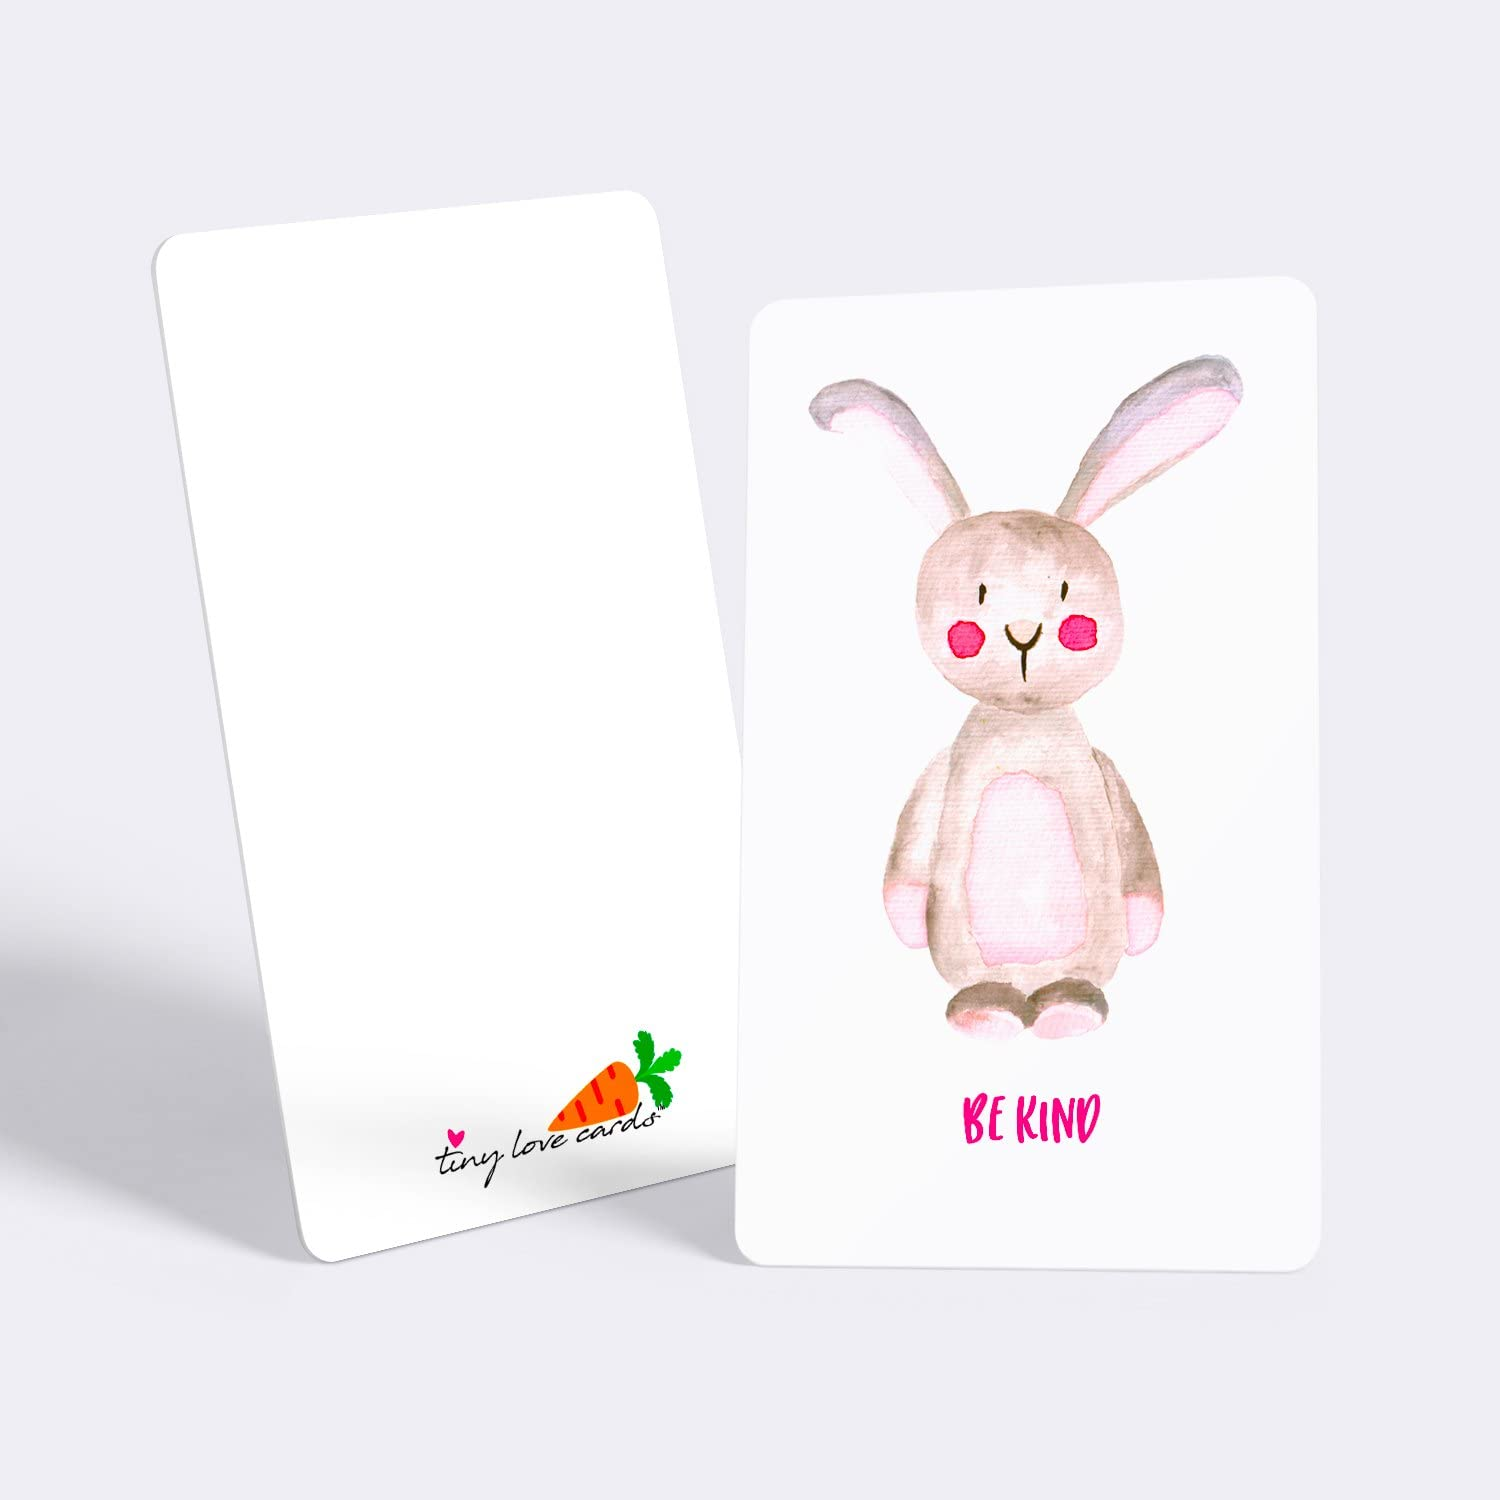 """Small Blank Note Cards Set of 85 Cute Mini Cards for Hand-Written Notes and Any Occasion Cute Animals: 5 Design Variety Set 2/"""" x 3.5/"""" Tiny Love Cards"""